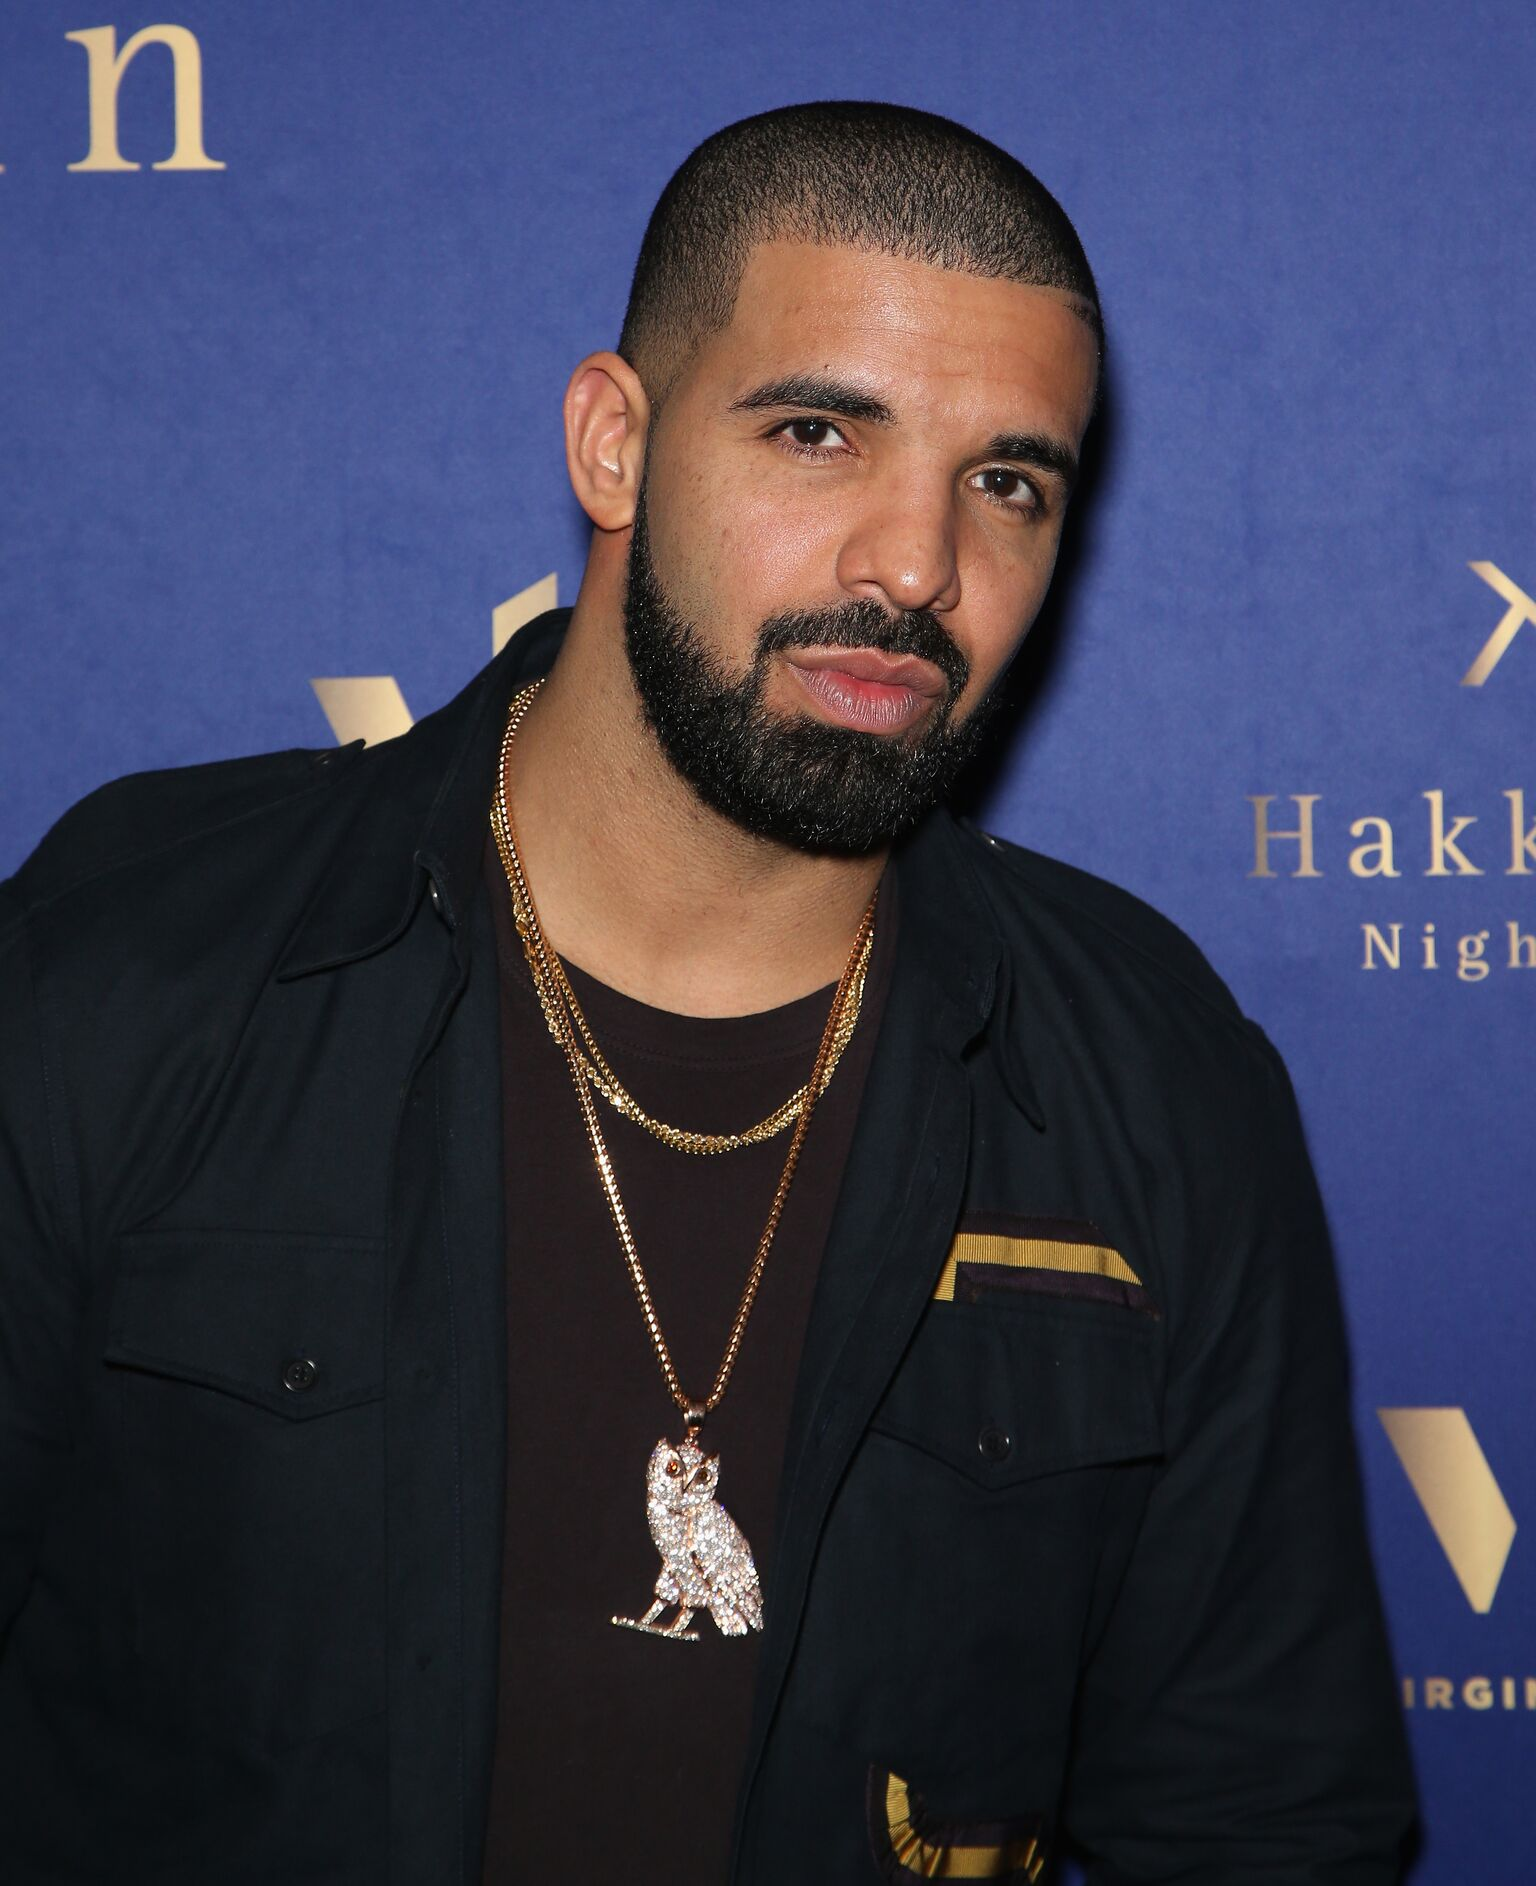 Recording artist Drake attends the after party for his concert at Hakkasan Las Vegas Nightclub at MGM Grand Hotel & Casino on September 12, 2016 | Photo: Getty Images